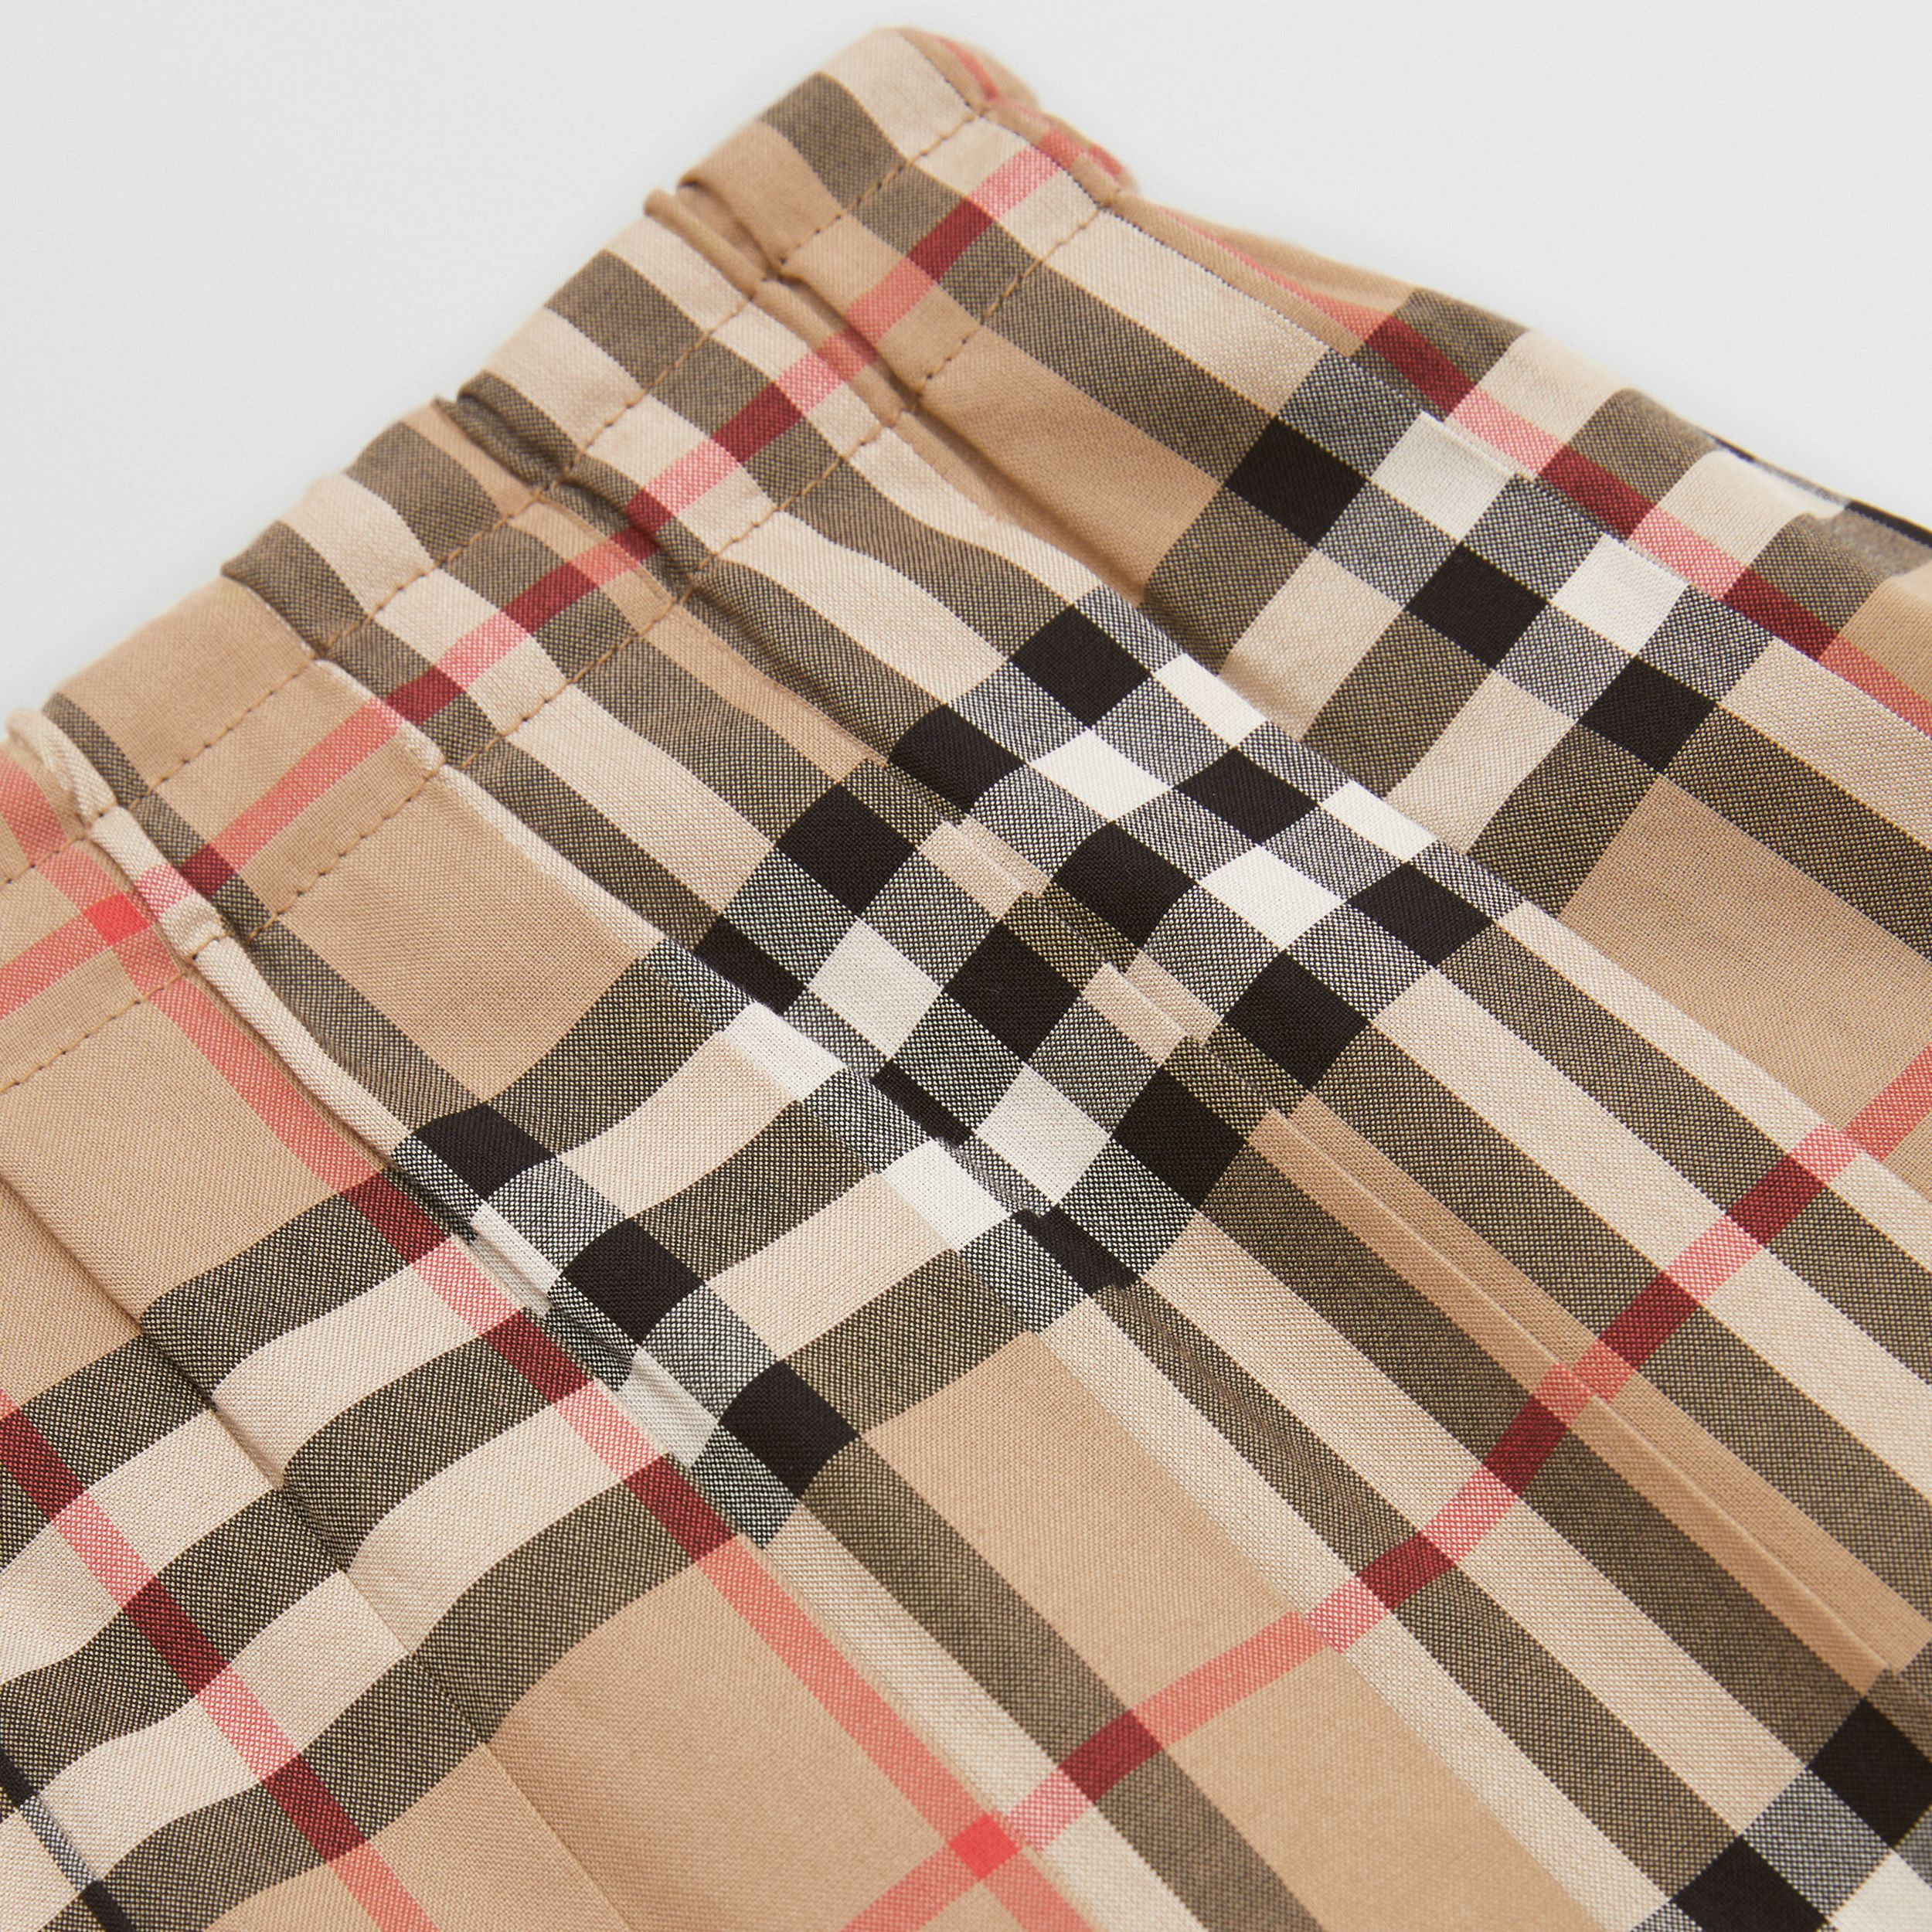 Vintage Check Pleated Skirt in Archive Beige | Burberry United Kingdom - 2